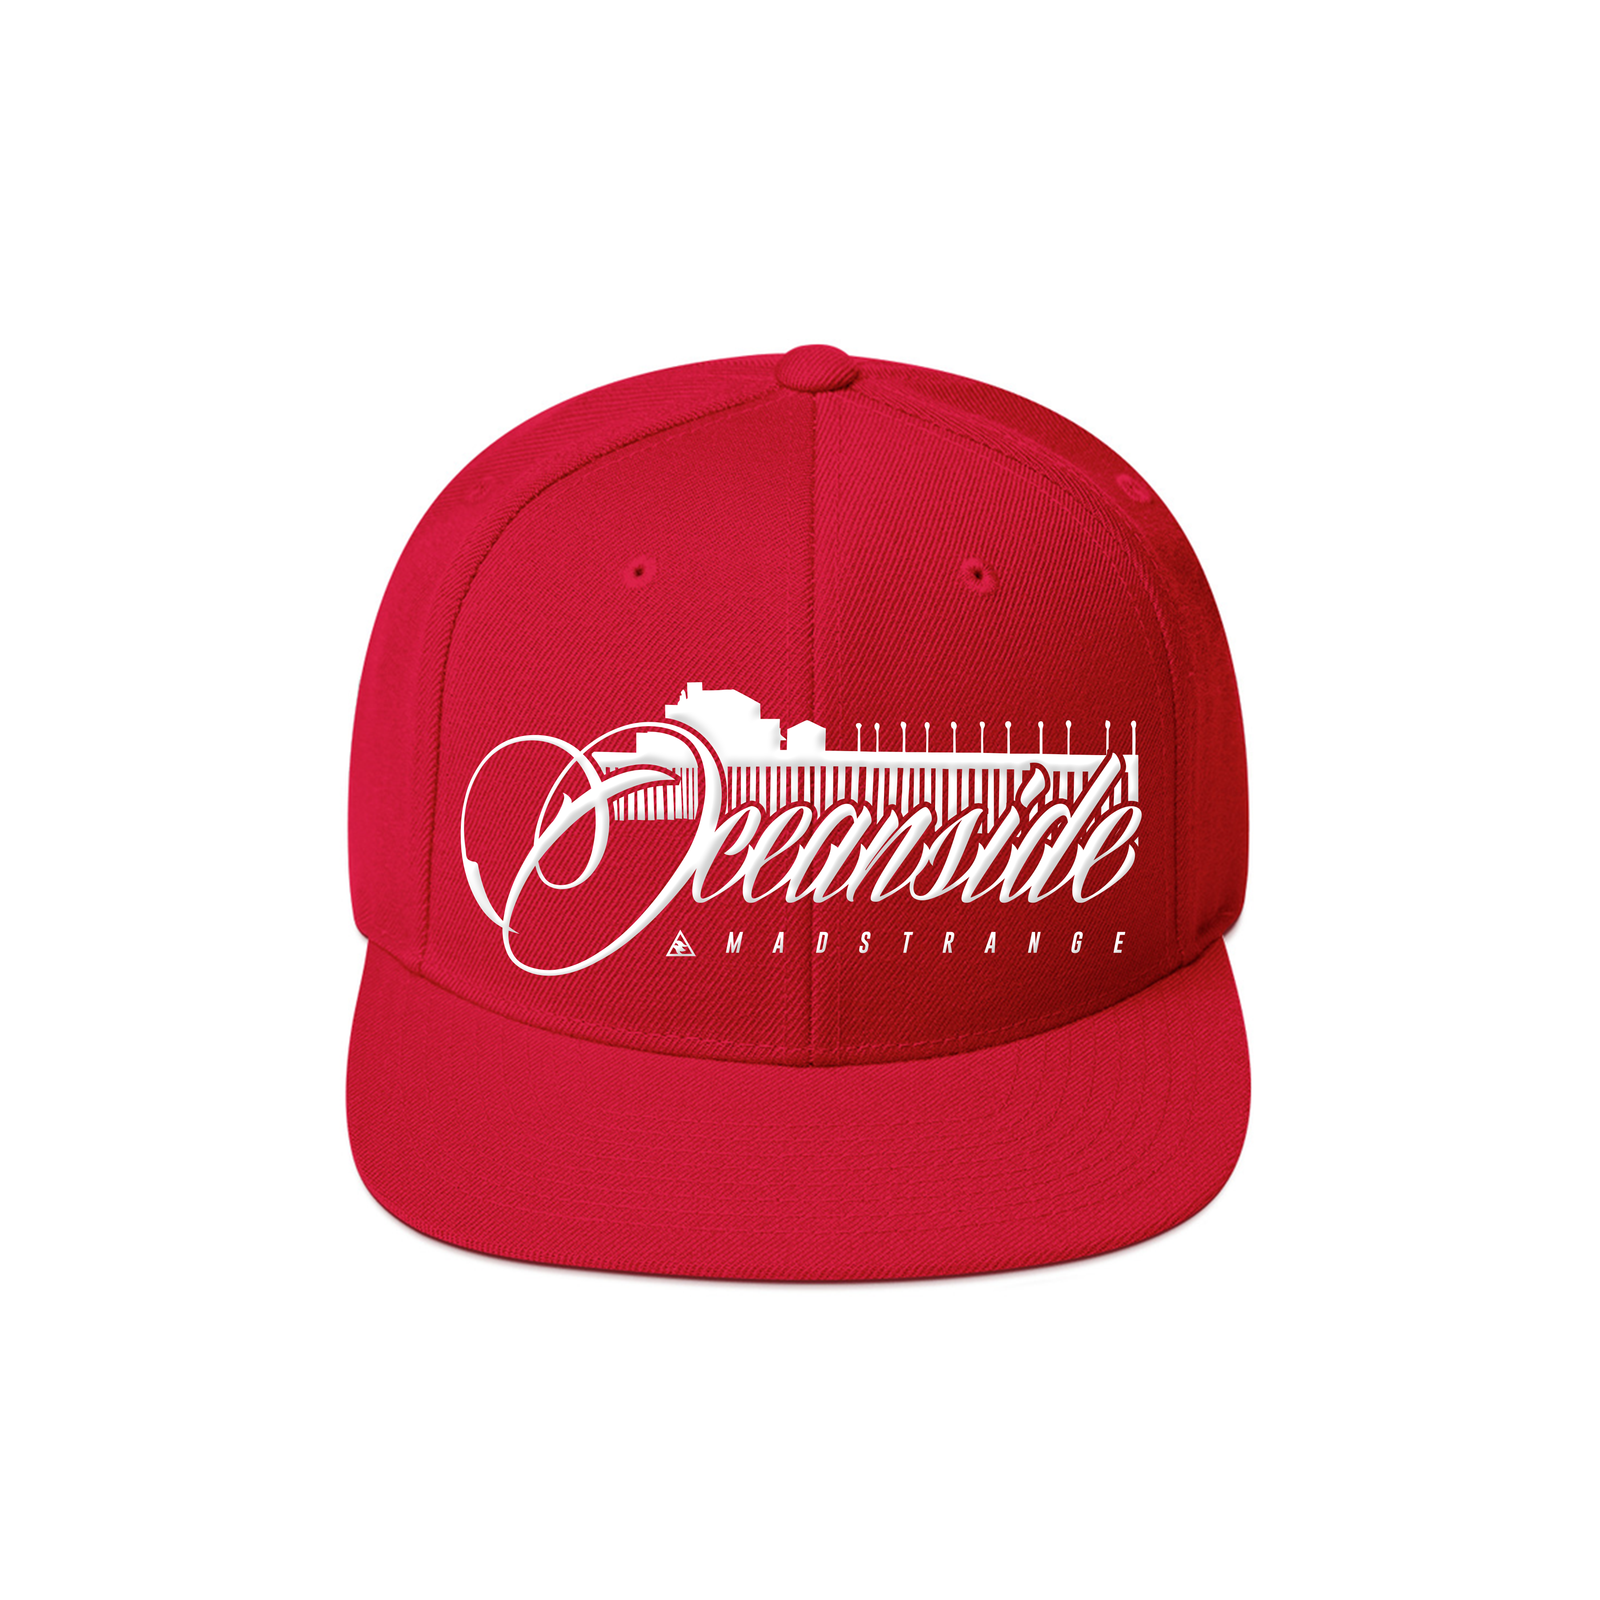 SCRIPT FULL OCEANSIDE SNAPBACK